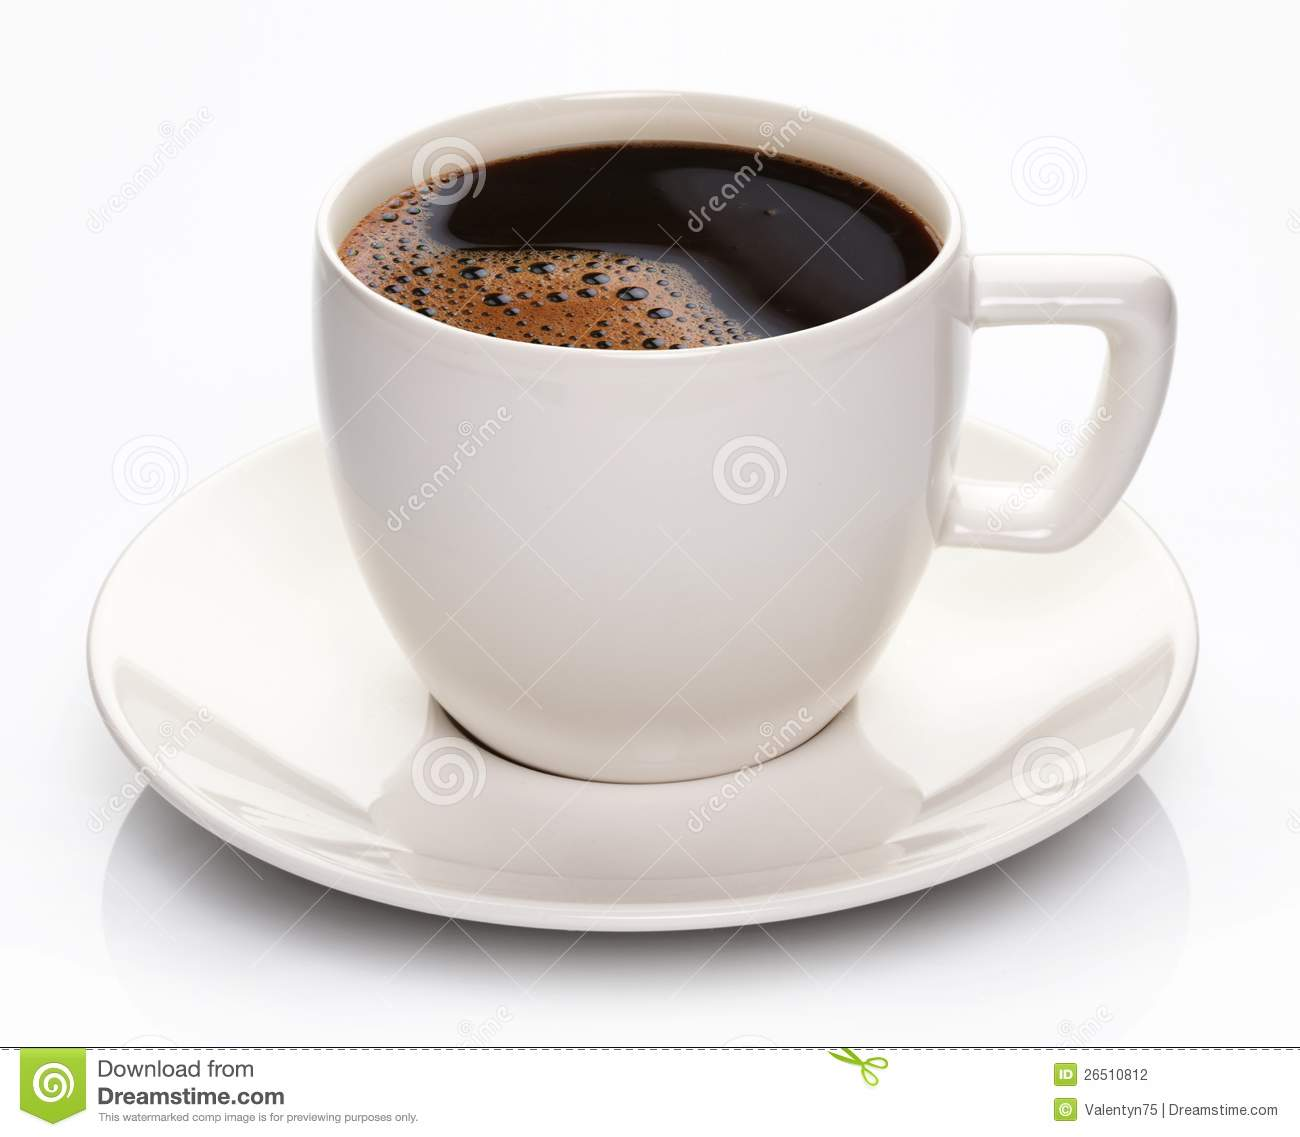 coffee cup and saucer royalty free stock image 26510812. Black Bedroom Furniture Sets. Home Design Ideas